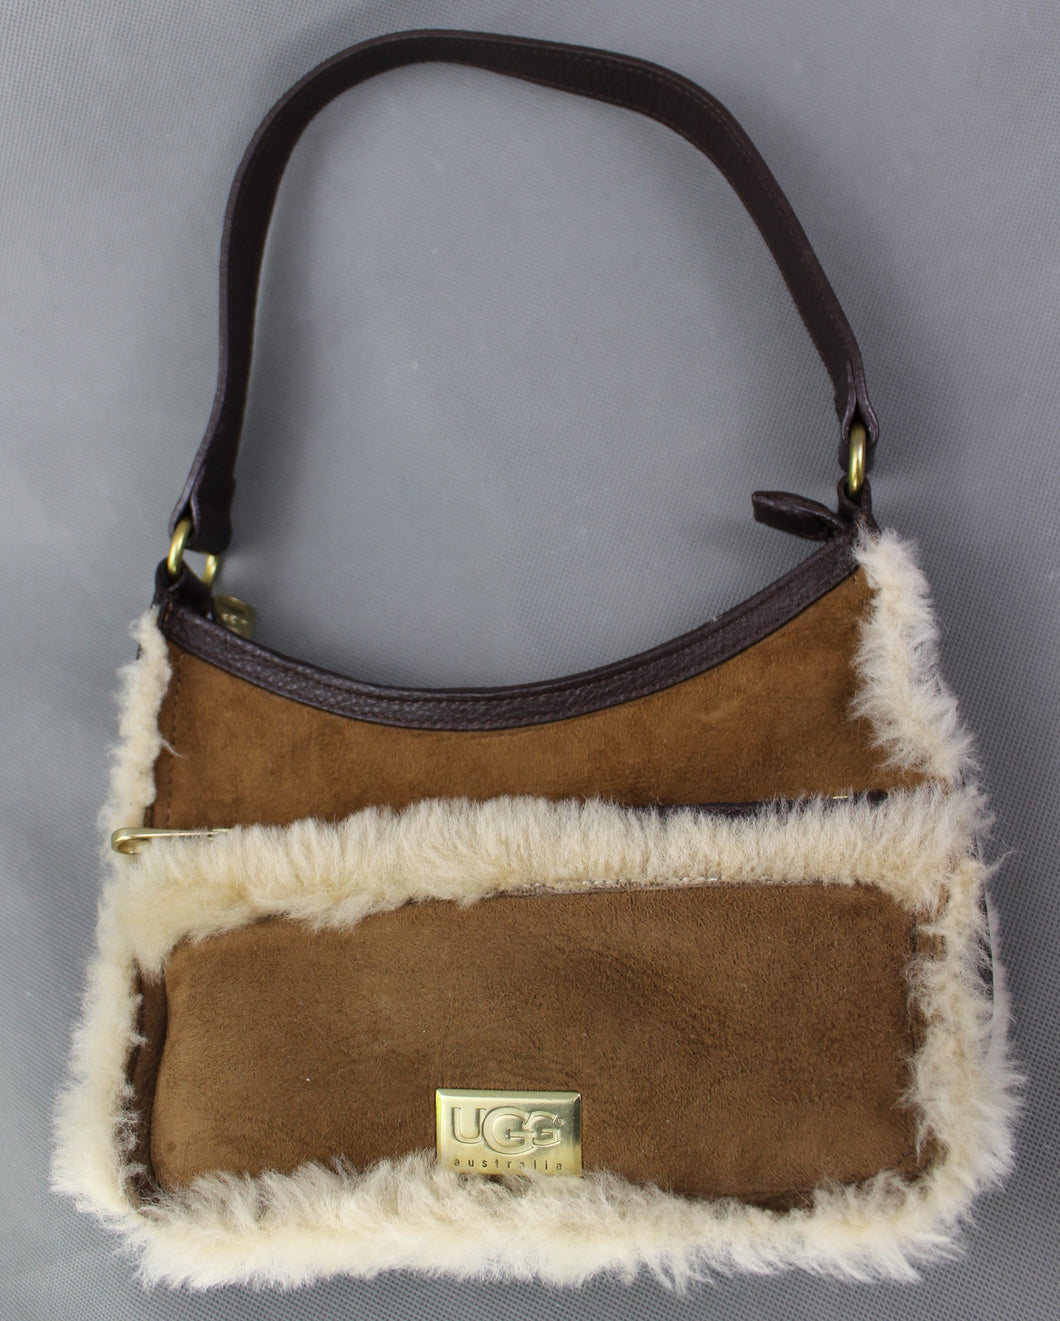 UGG Australia Brown Real Dyed Shearling Sheepskin HANDBAG - UGGS Bag